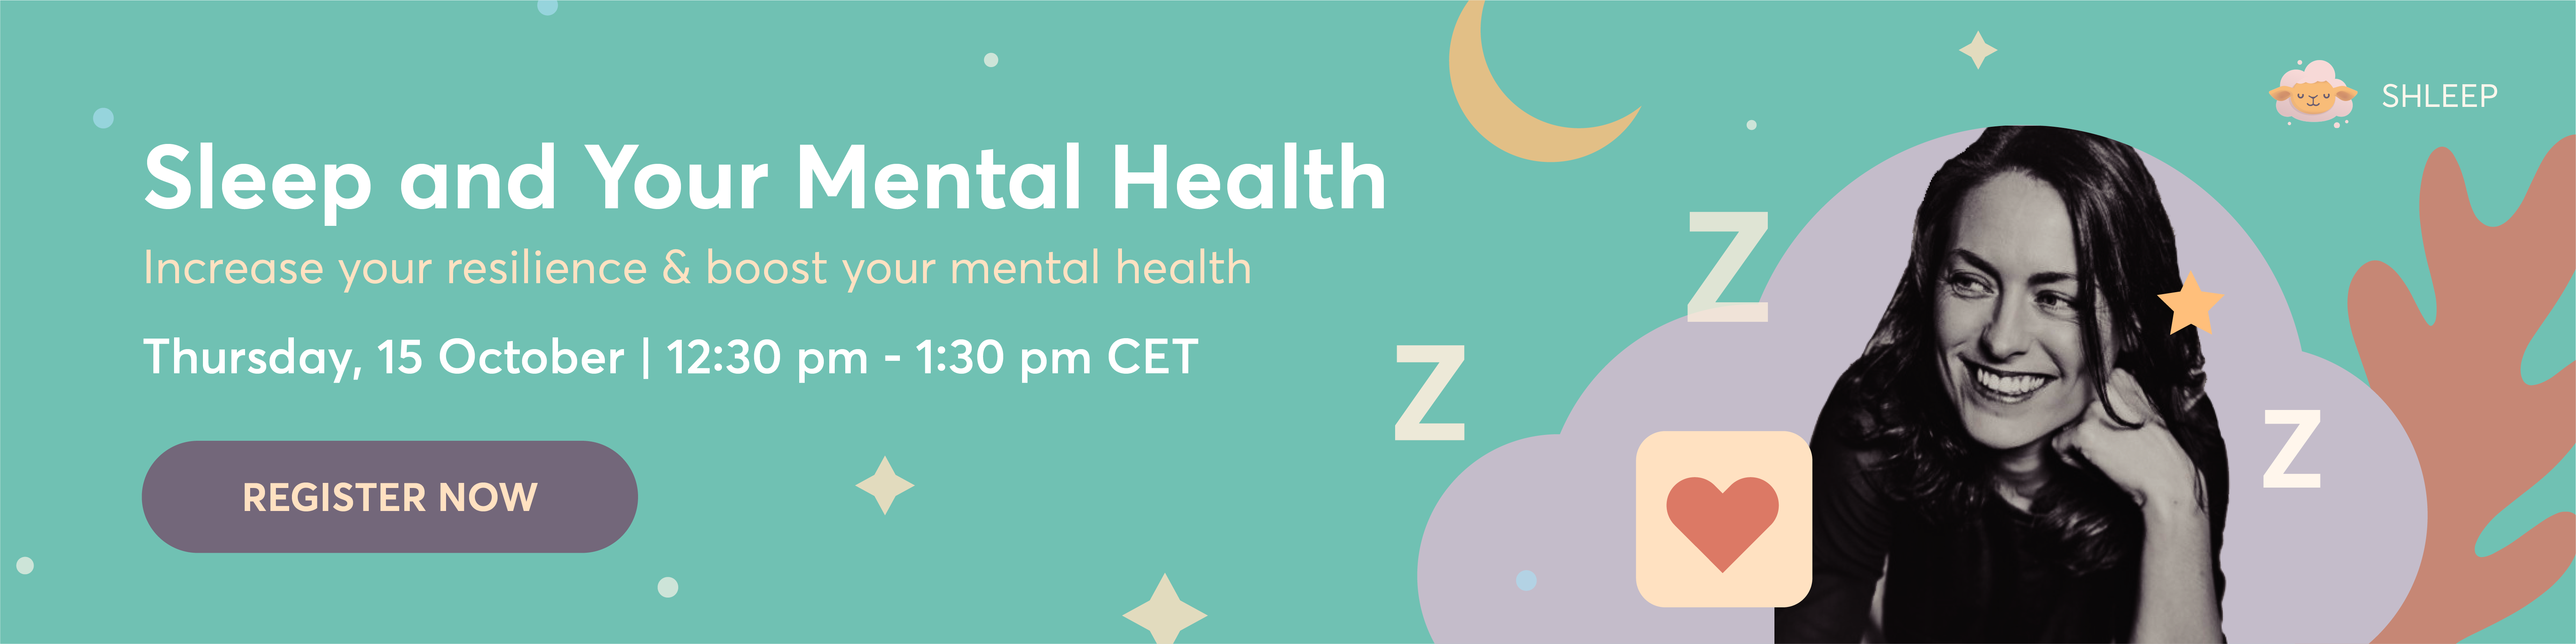 Shleep: Sleep and your mental health webinar